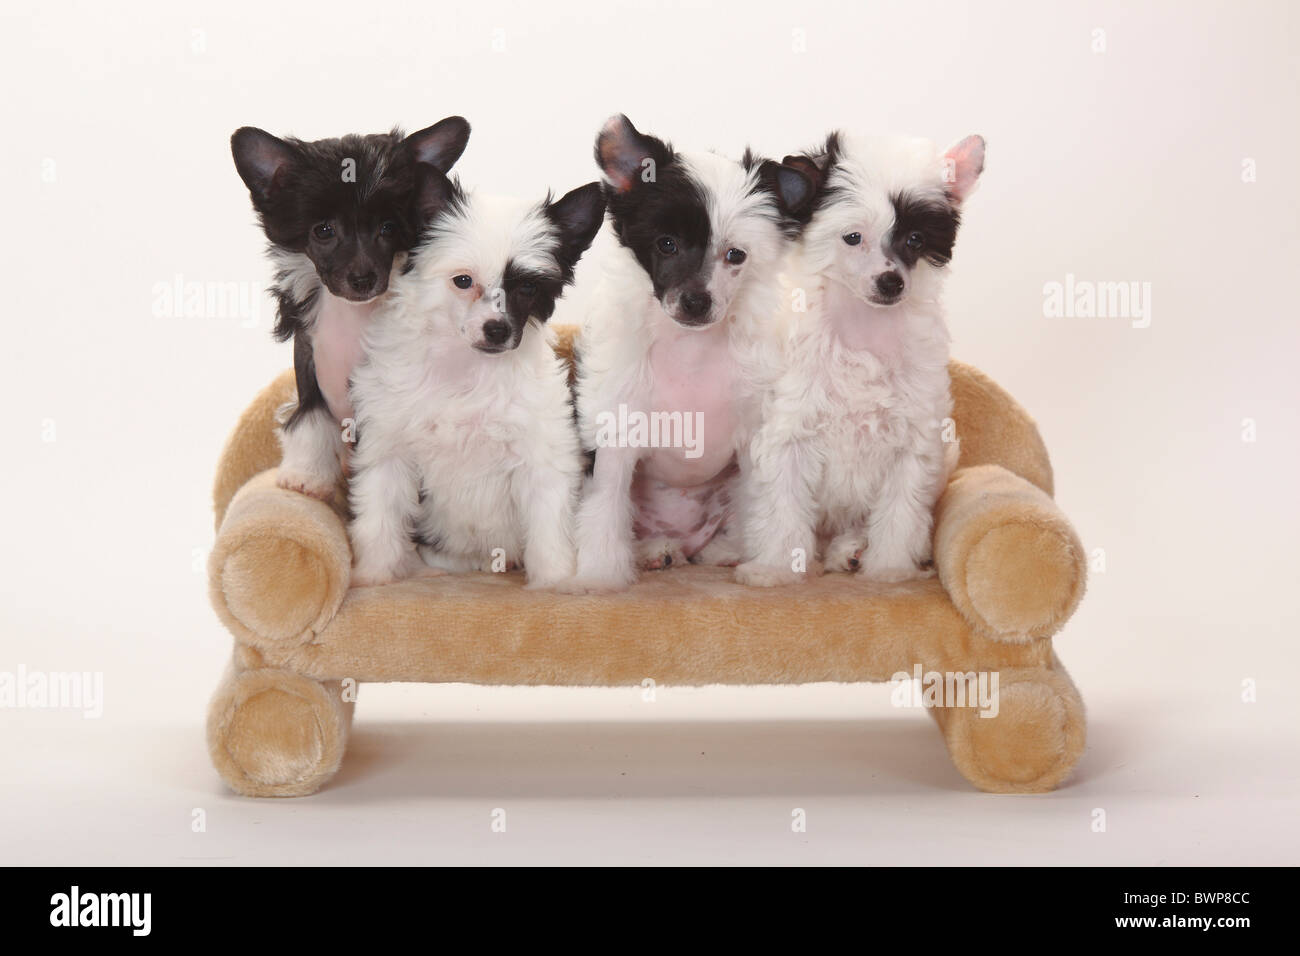 Chinese Crested Dogs, hairless and powderpuff, puppies, 9 weeks / powder puff, sofa, couch - Stock Image